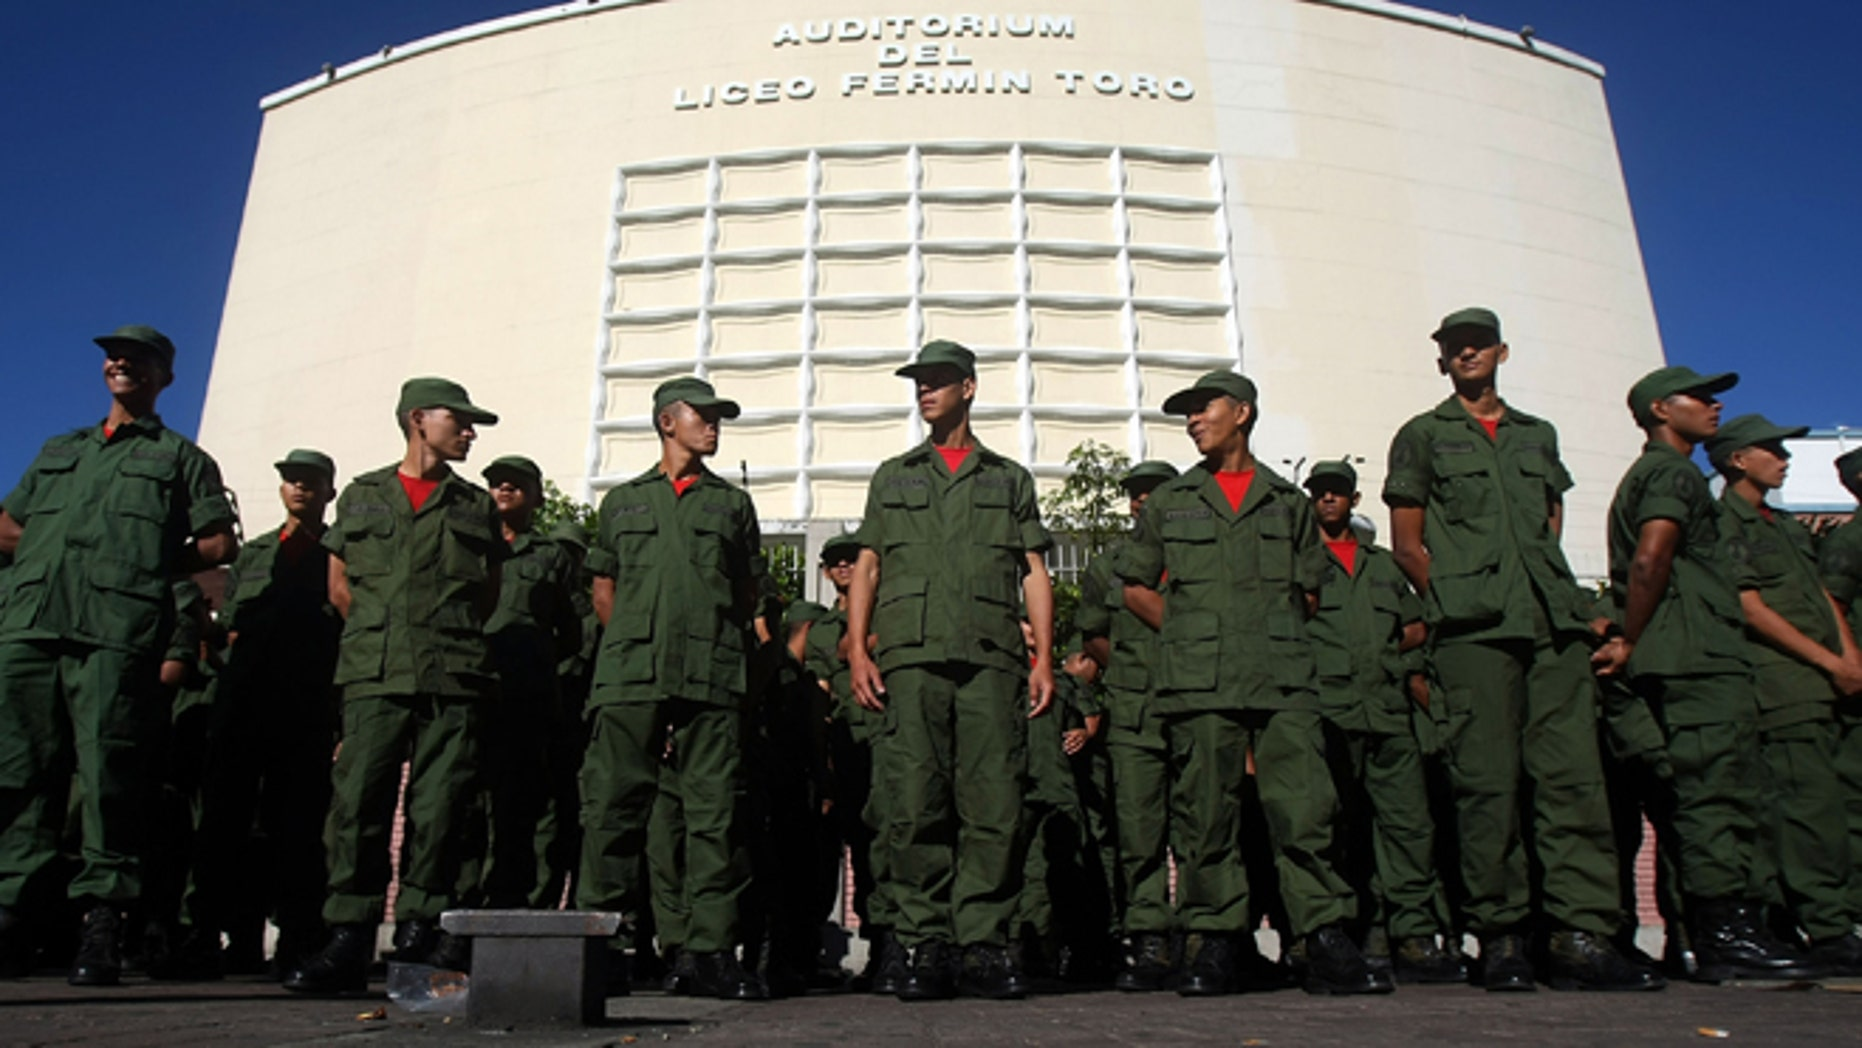 Soldiers line up at a polling station before casting their ballots during a referendum on changes to the Constitution proposed by Venezuelan President Hugo Chavez December 2, 2007 in Caracas, Venezuela. (Photo by Mario Tama/Getty Images)